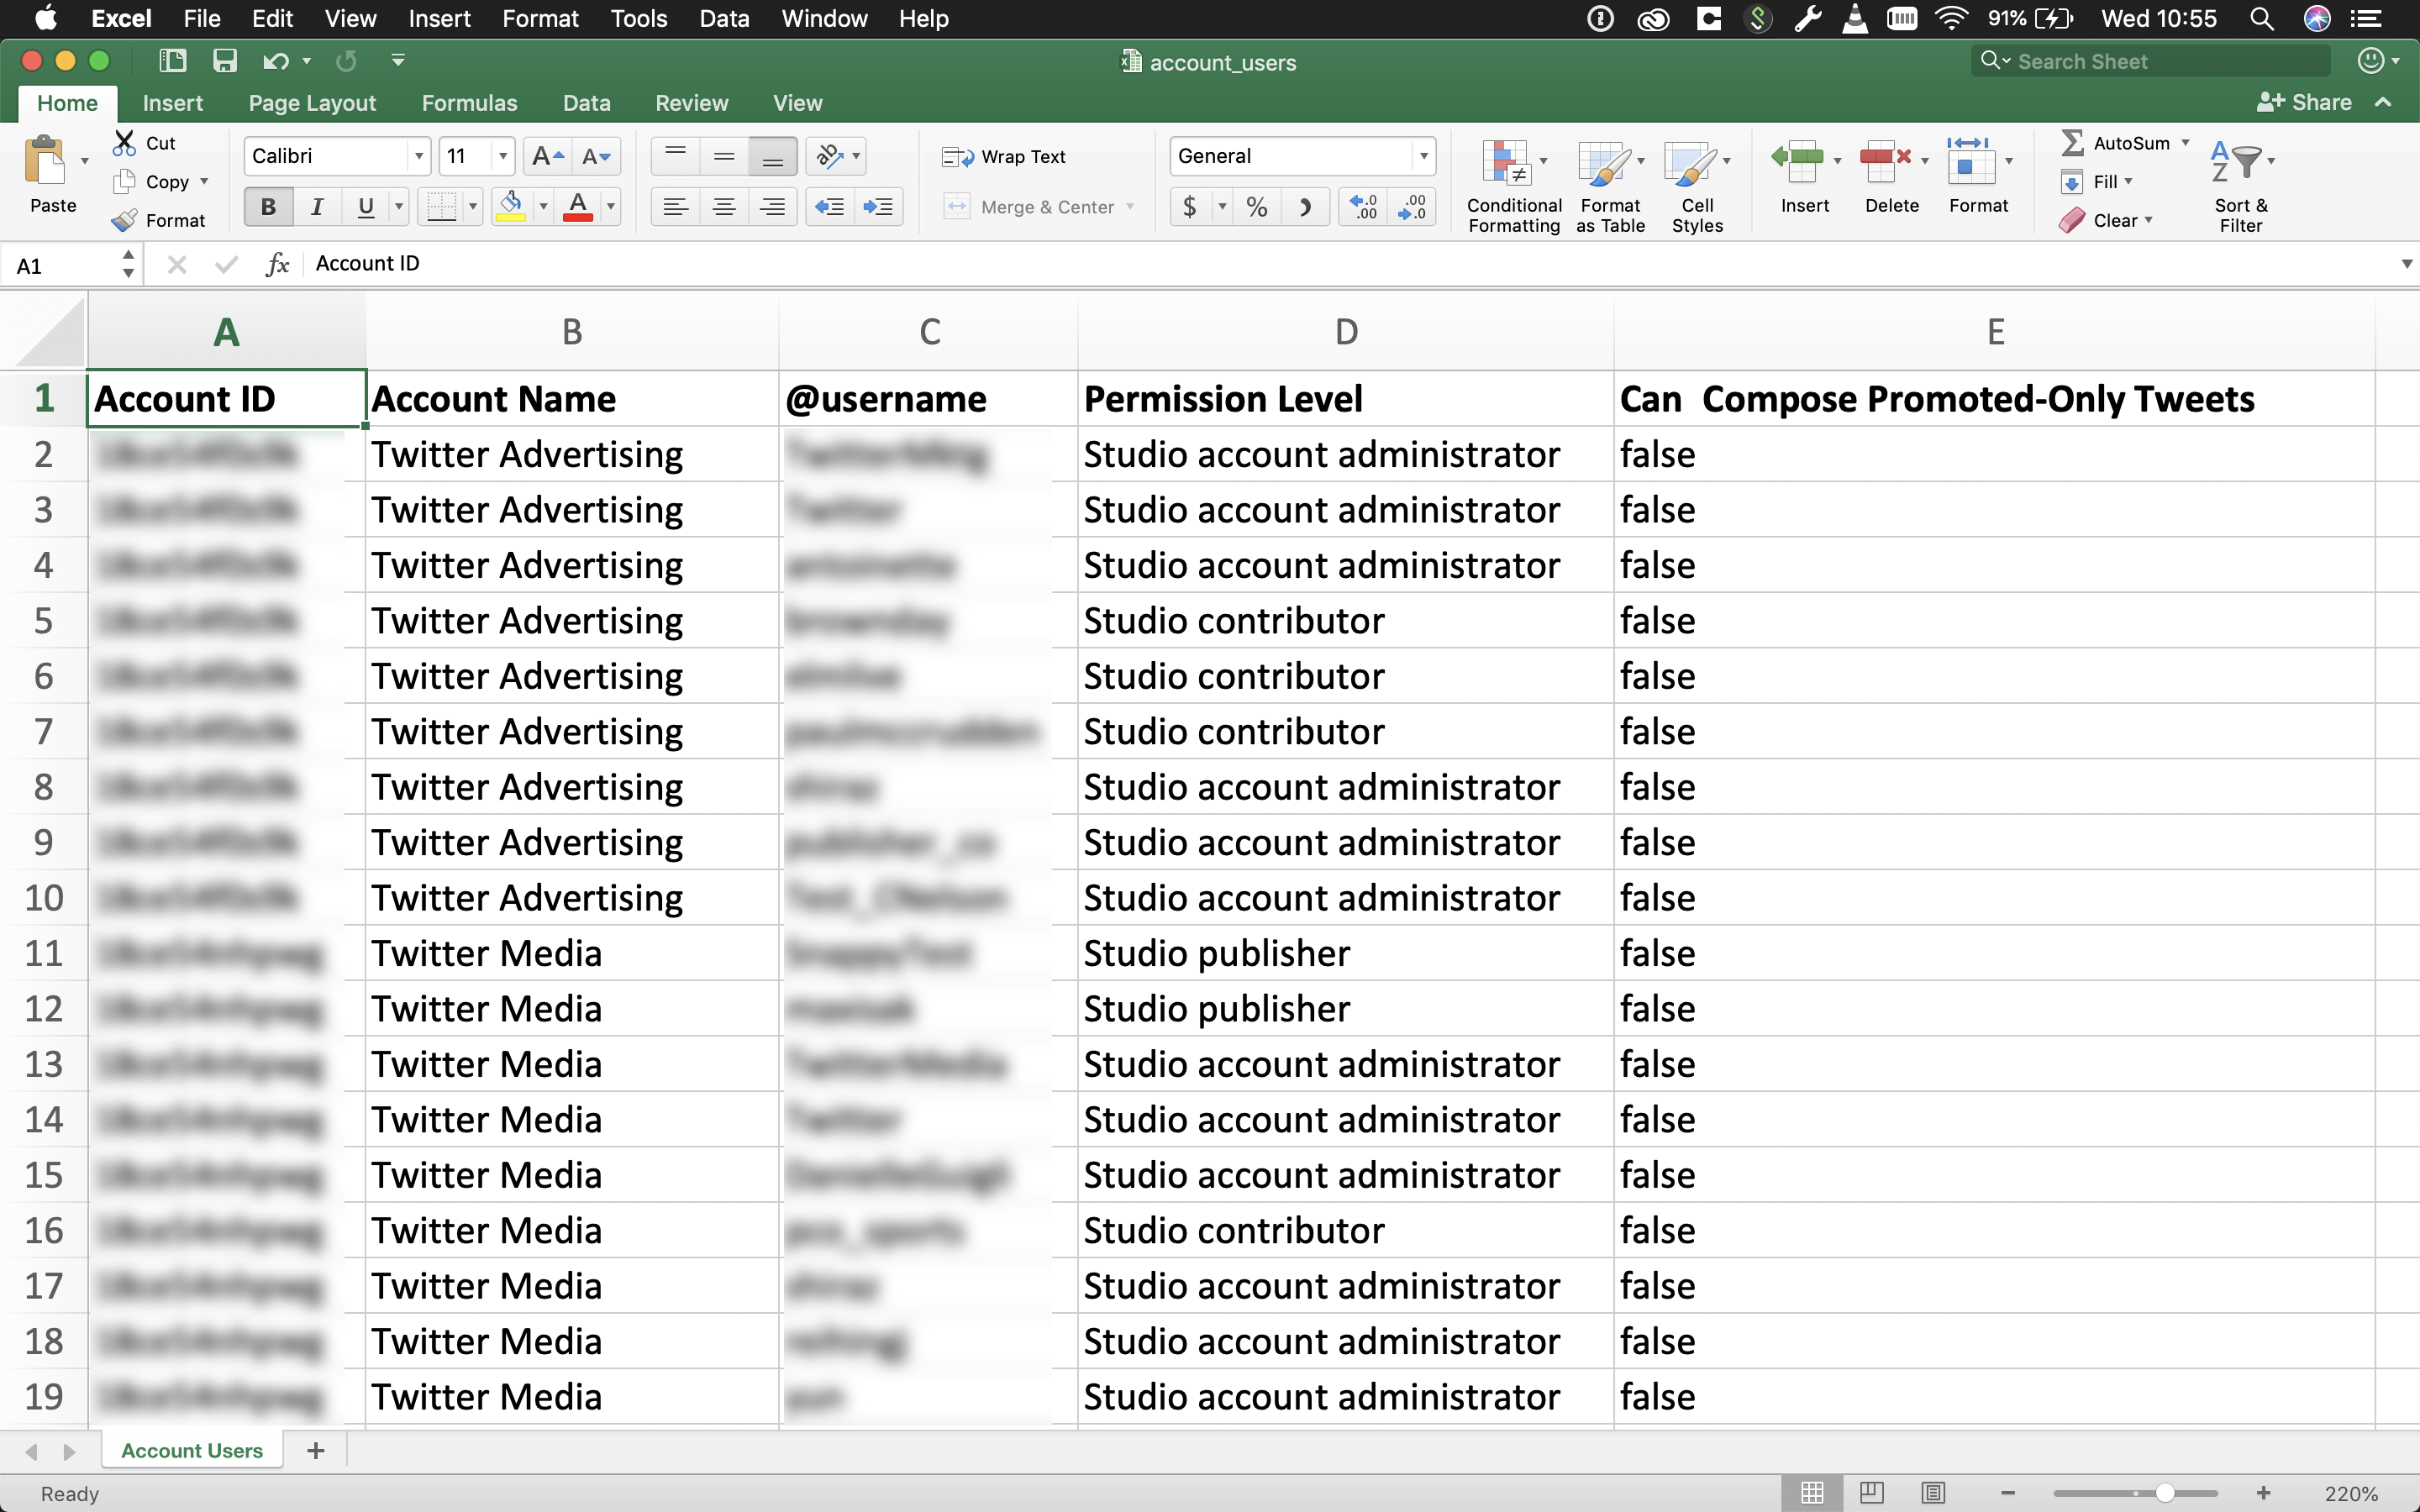 5. Open the template in your preferred spreadsheet application.